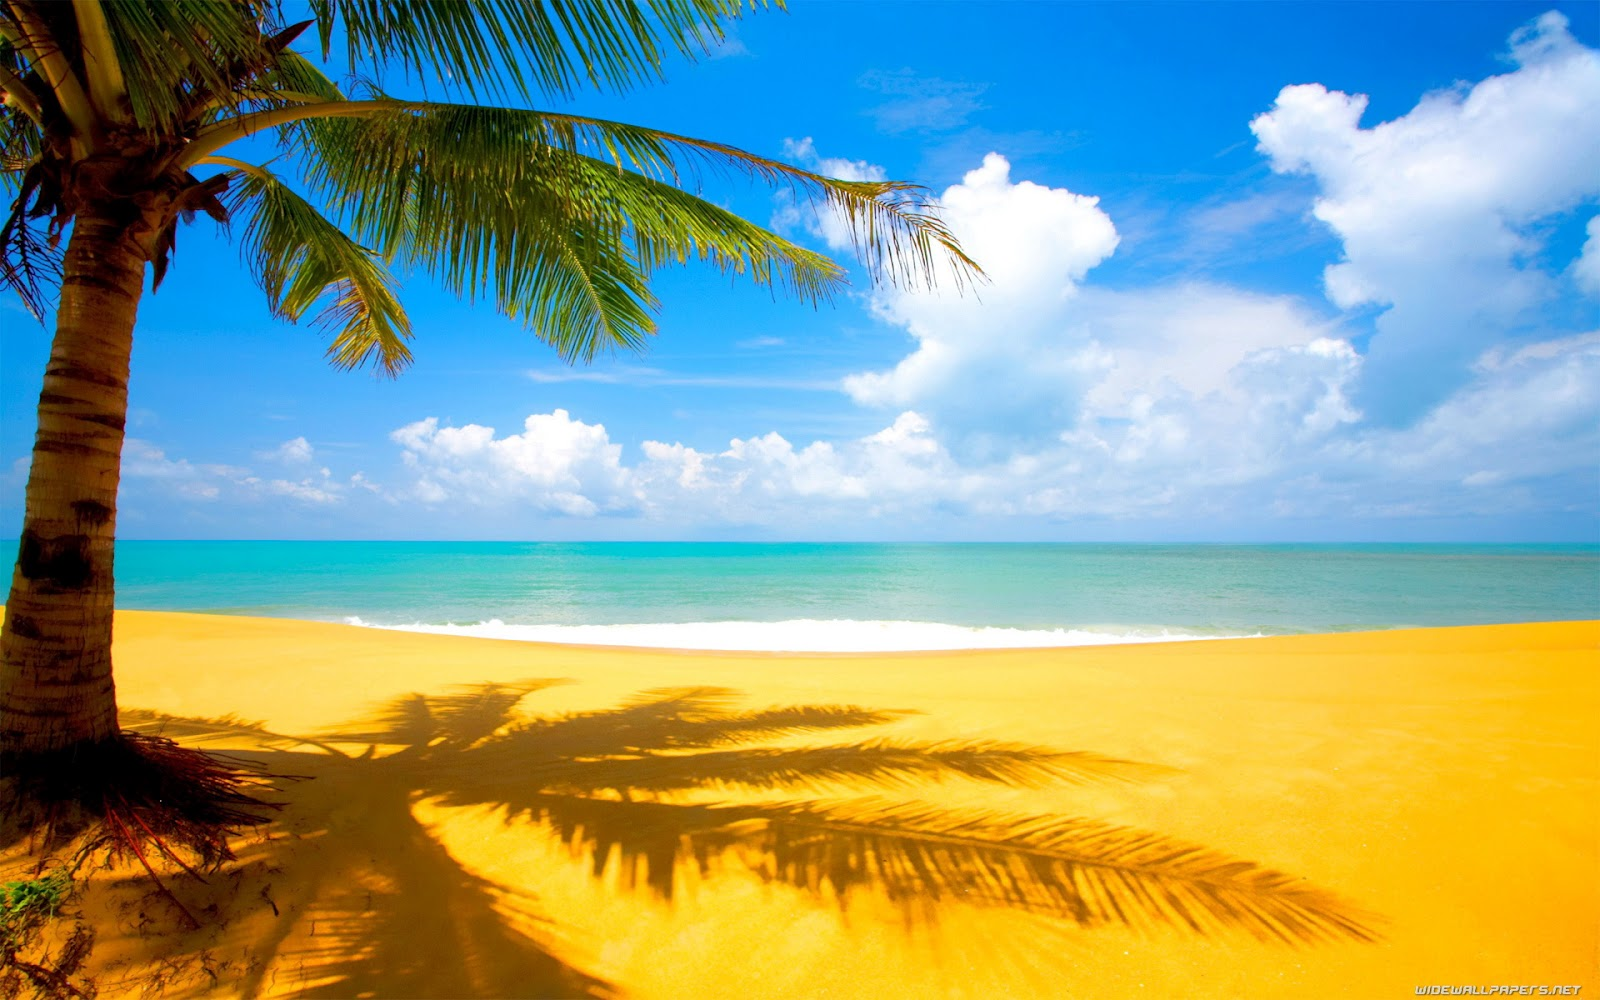 Beach View High Res Nature Backgrounds Wallpaper for Widescreen PC 1600x1000